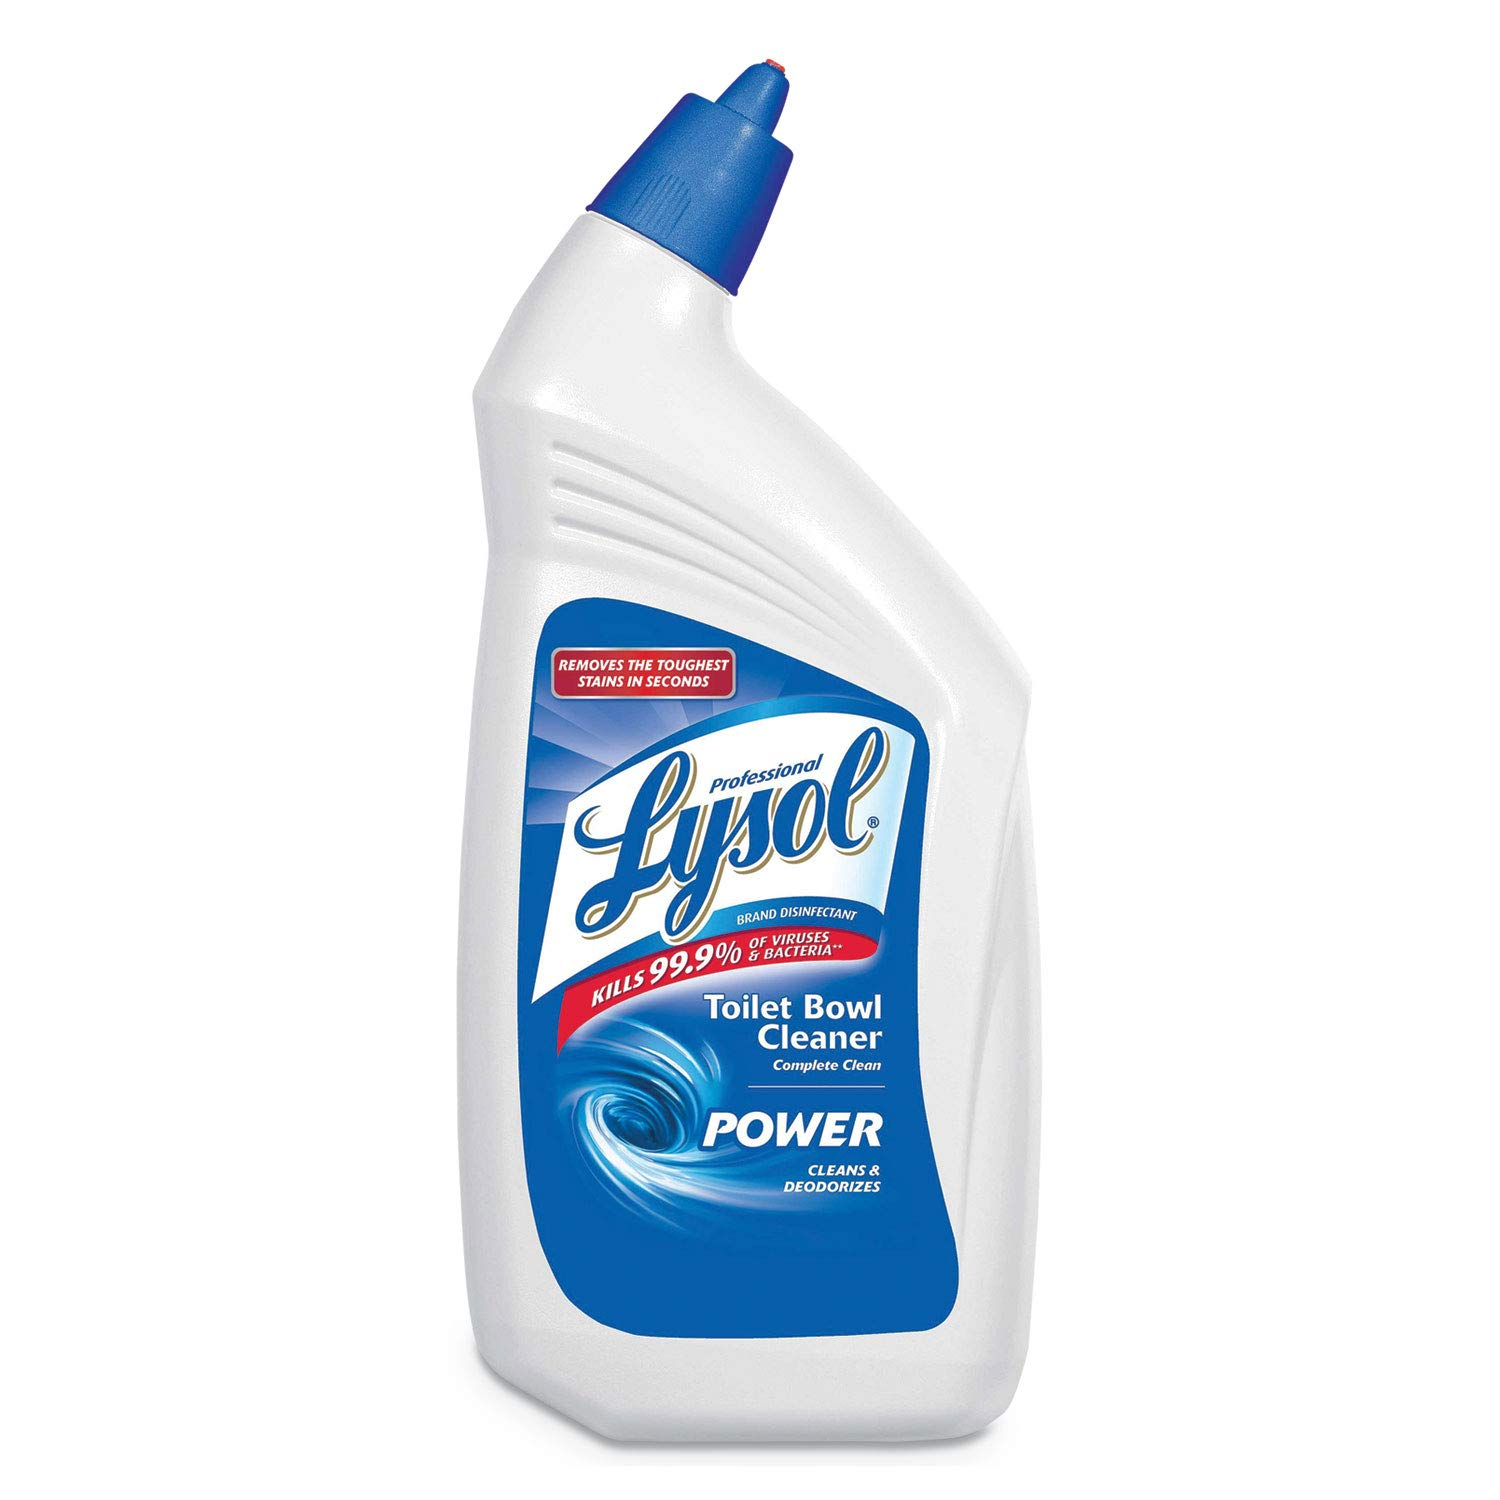 LYSOL Professional Weekly update Brand Disinfectant Bowl Japan Maker New Toilet Cleaner